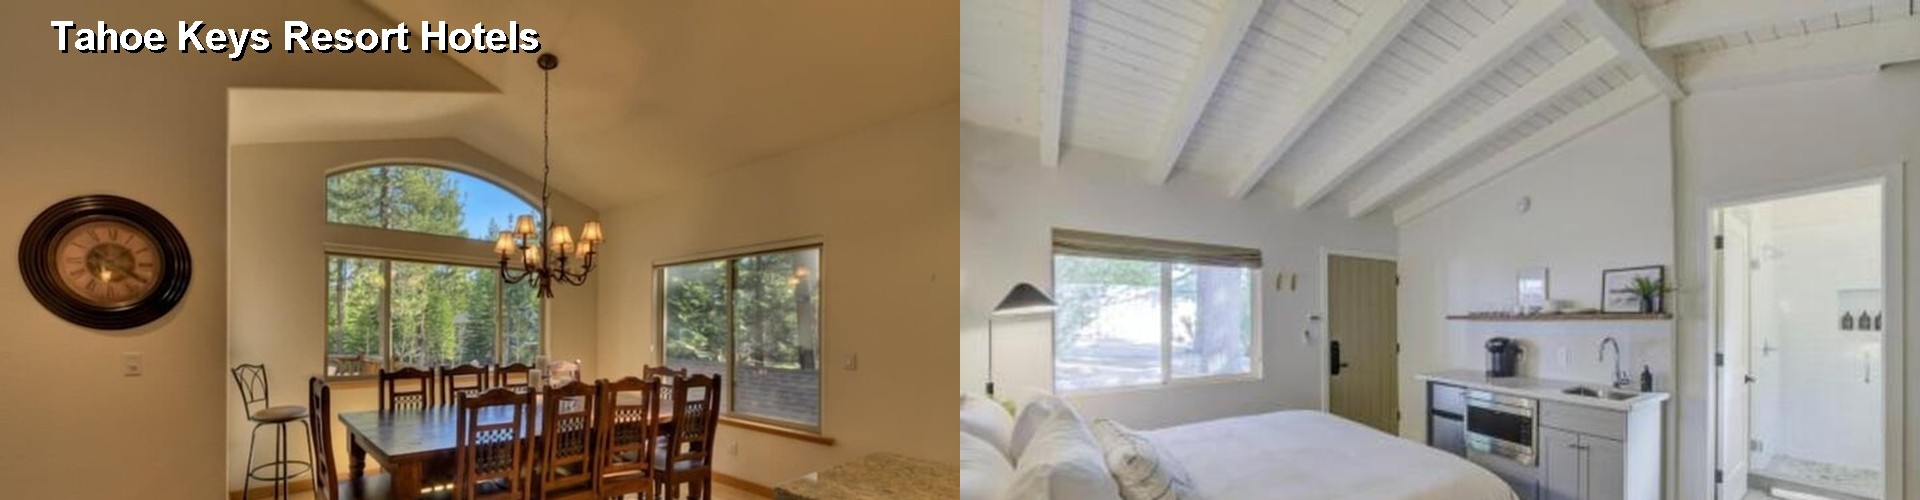 5 Best Hotels near Tahoe Keys Resort